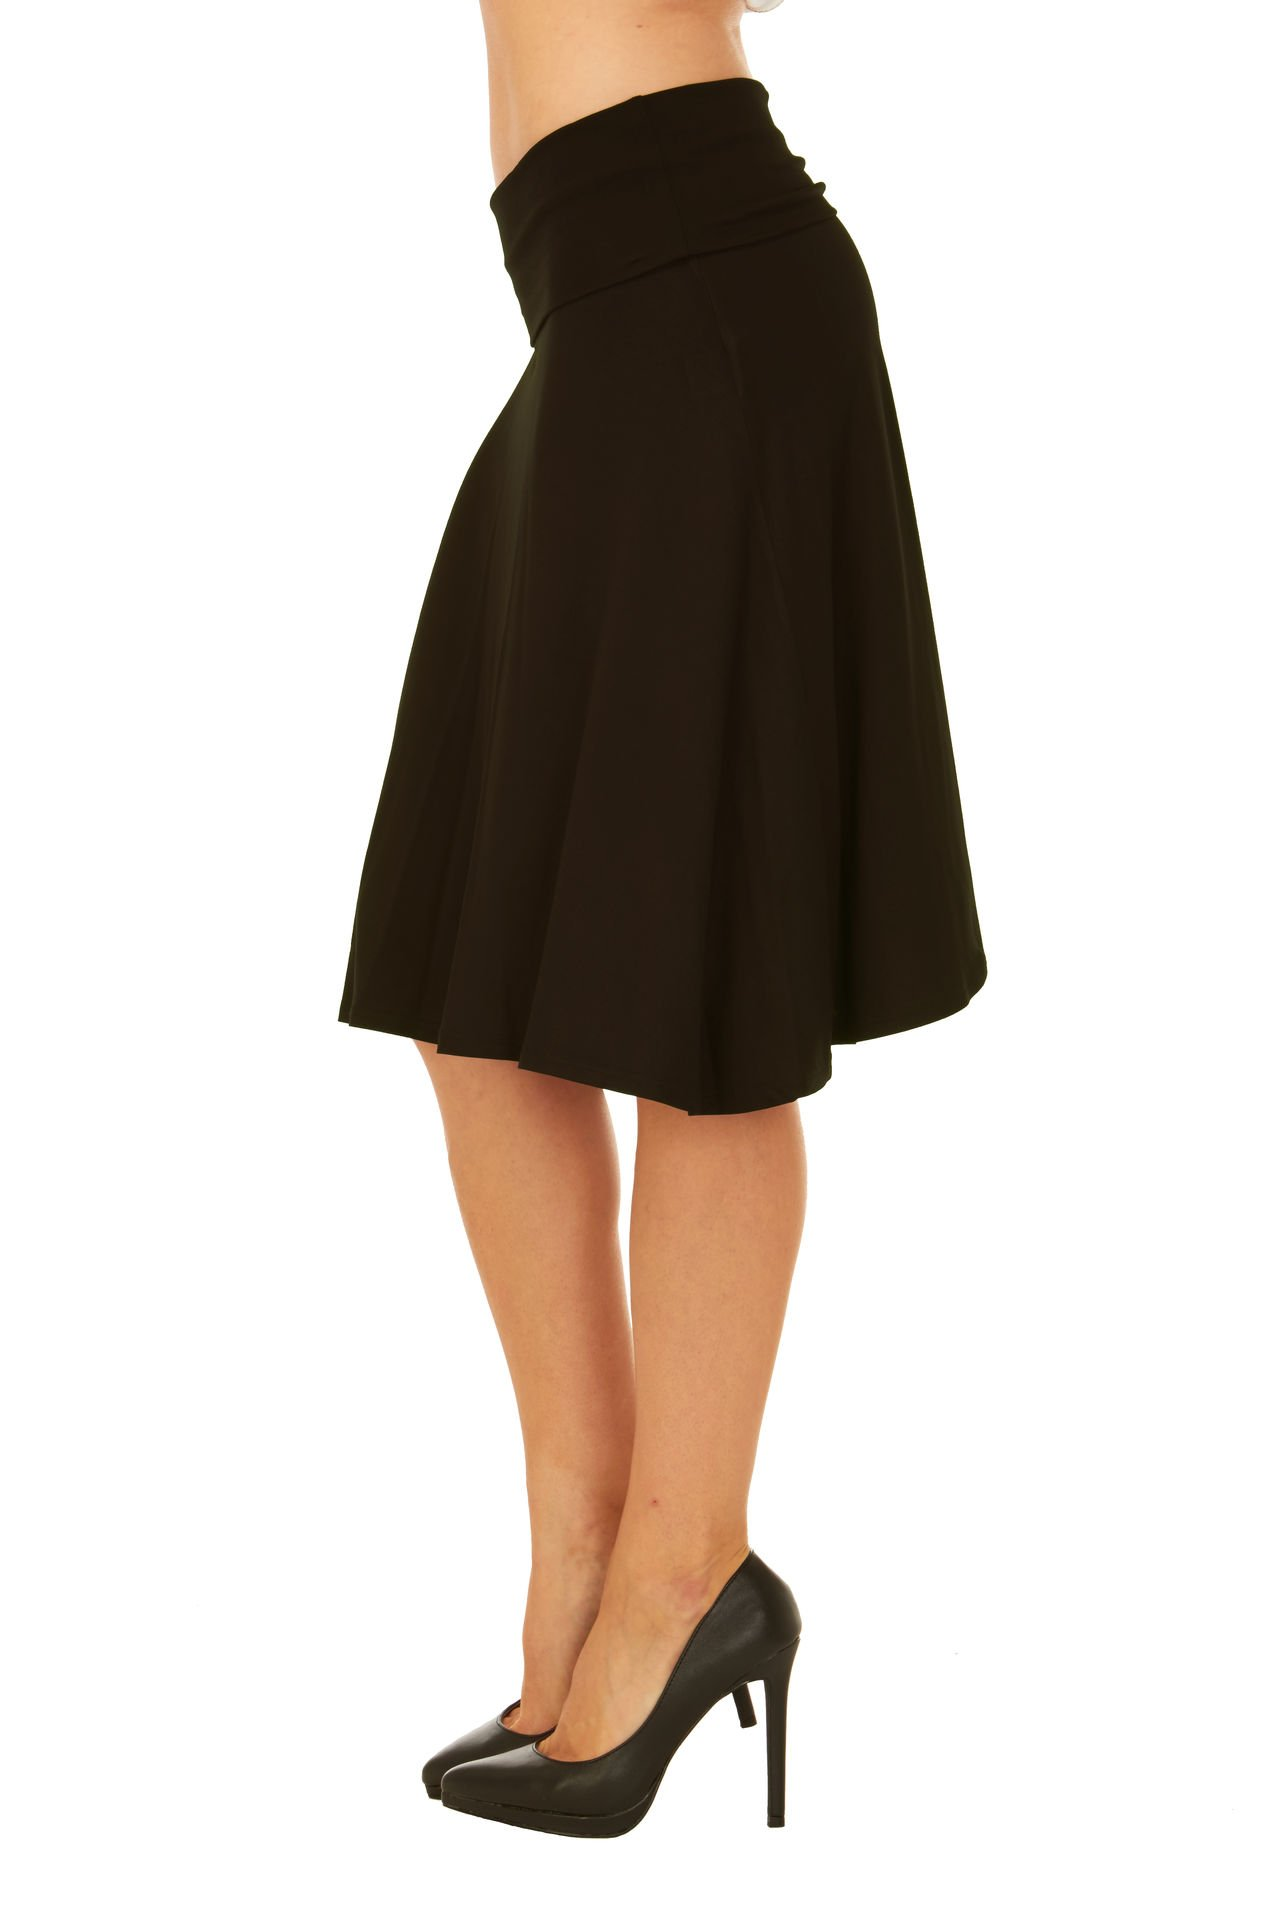 Red Hanger Womens Basic Solid Stretch Fold-Over Flare Midi Skirt (Black-L) by Red Hanger (Image #2)